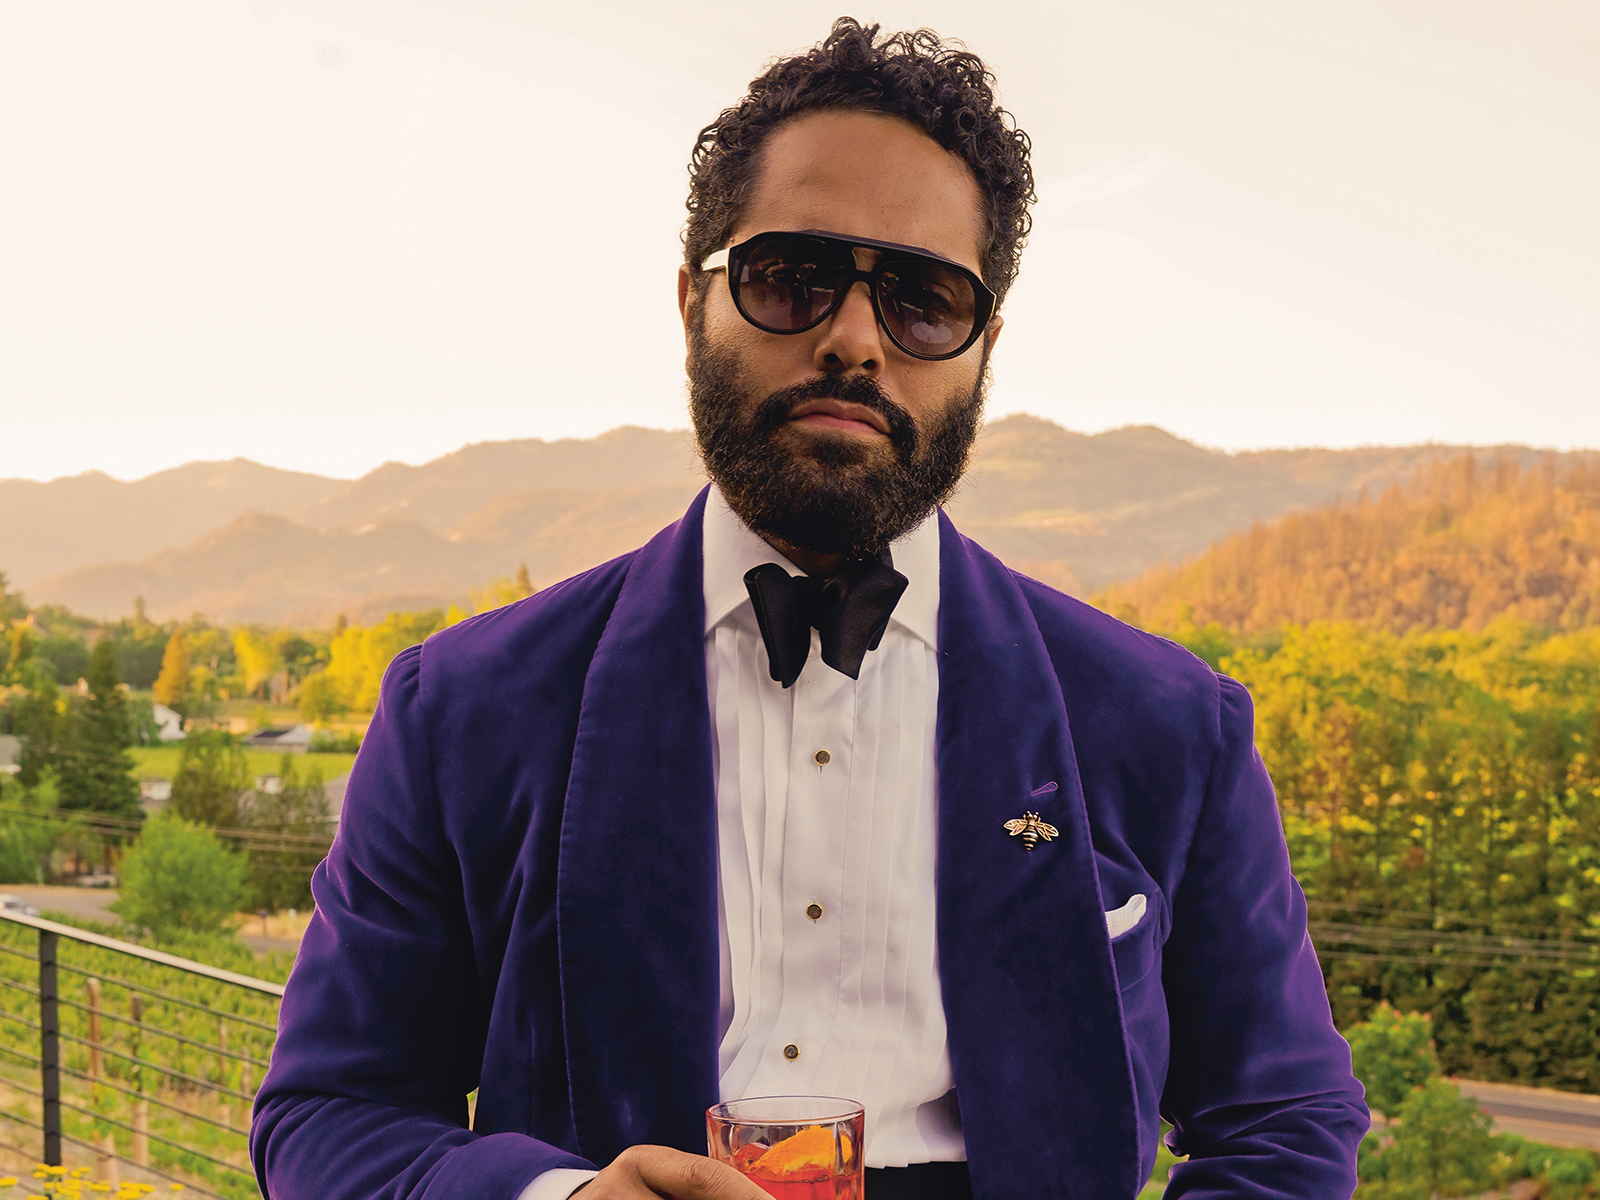 Angel Ramos stands in front of vineyards in a blue velvet suit jacket